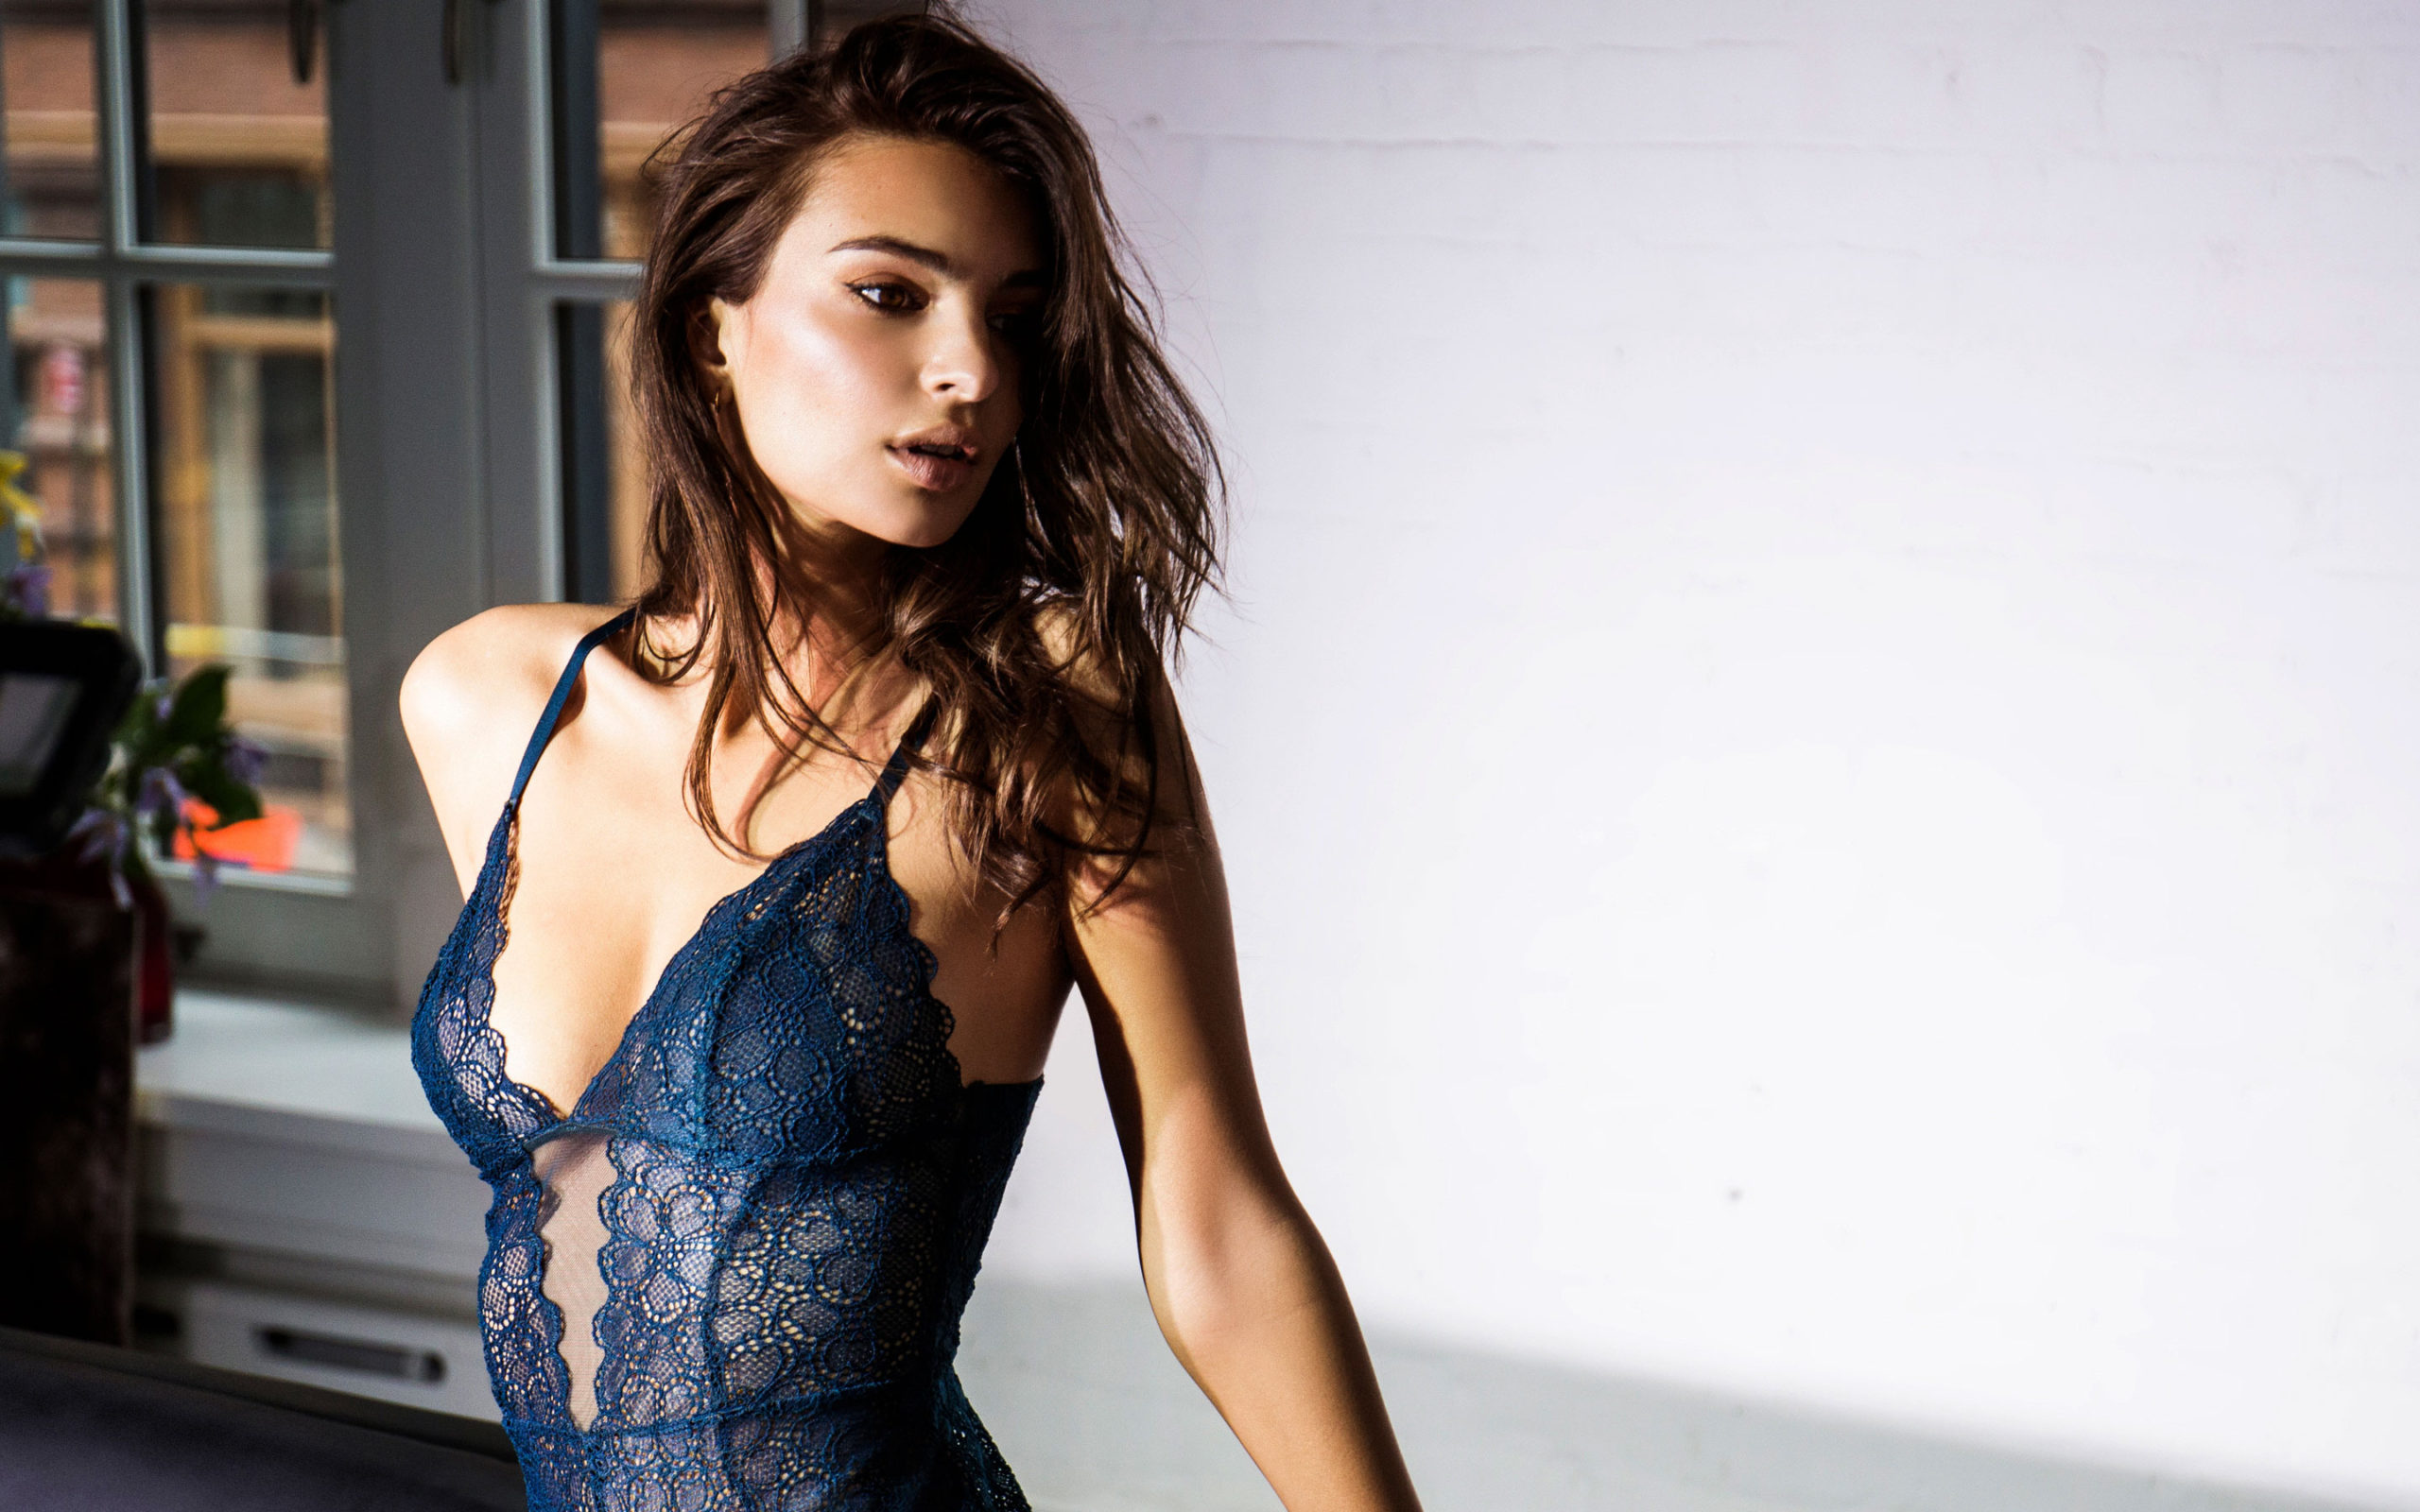 Emily Ratajkowski Hot Blue Underwear Pictures scaled - Emily Ratajkowski Net Worth, Pics, Wallpapers, Career and Biography